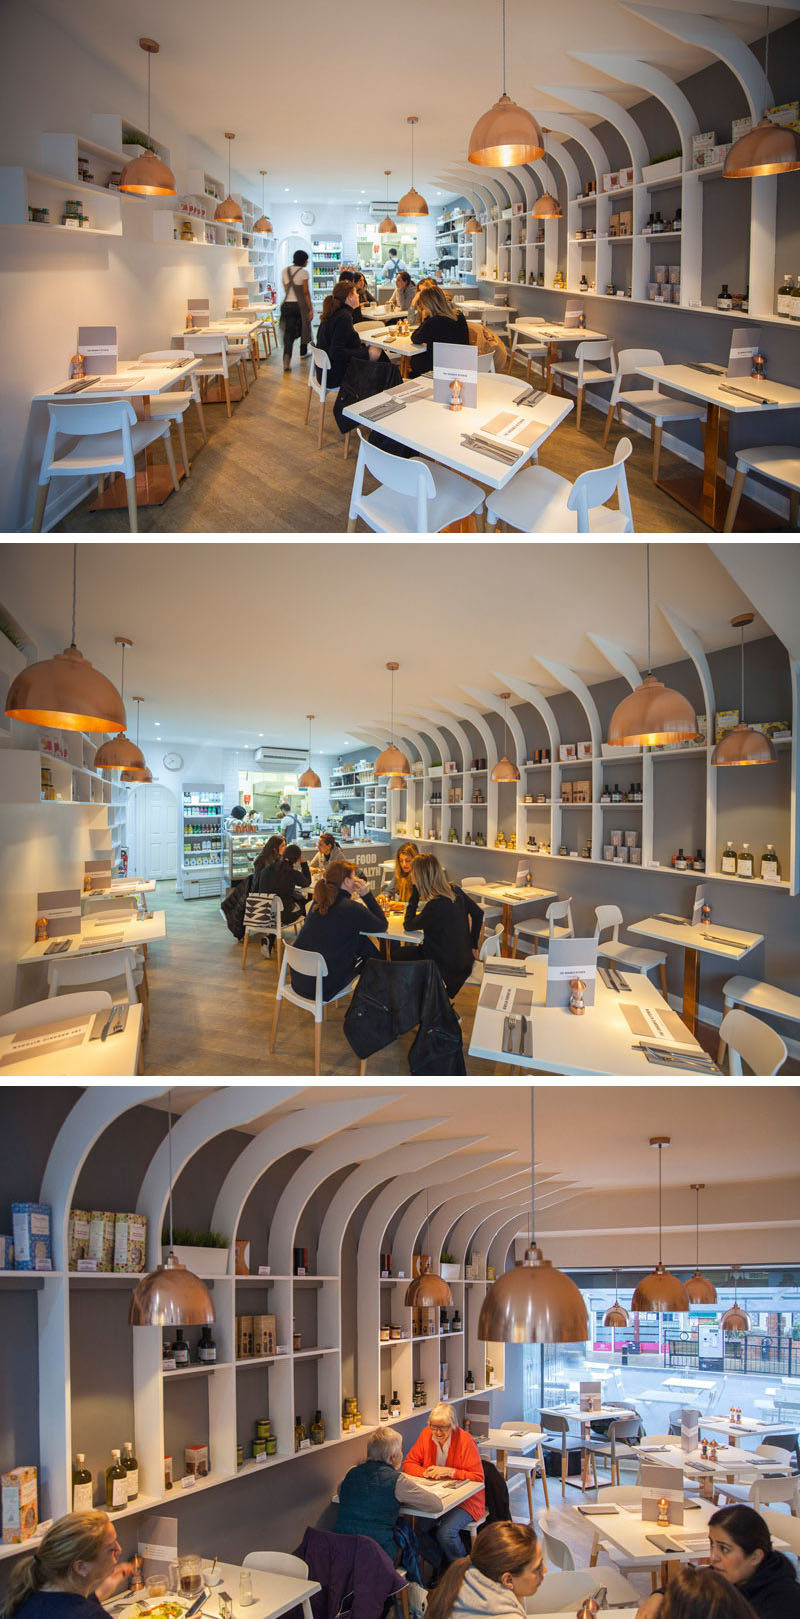 In this modern resturant interior, the designers used white for the walls, furniture, and shelves, wood on the floors and chair legs, copper accents in the form of light fixtures, table stands, and salt and pepper shakers. A grey accent wall is used to draw your eye to the white shelves.